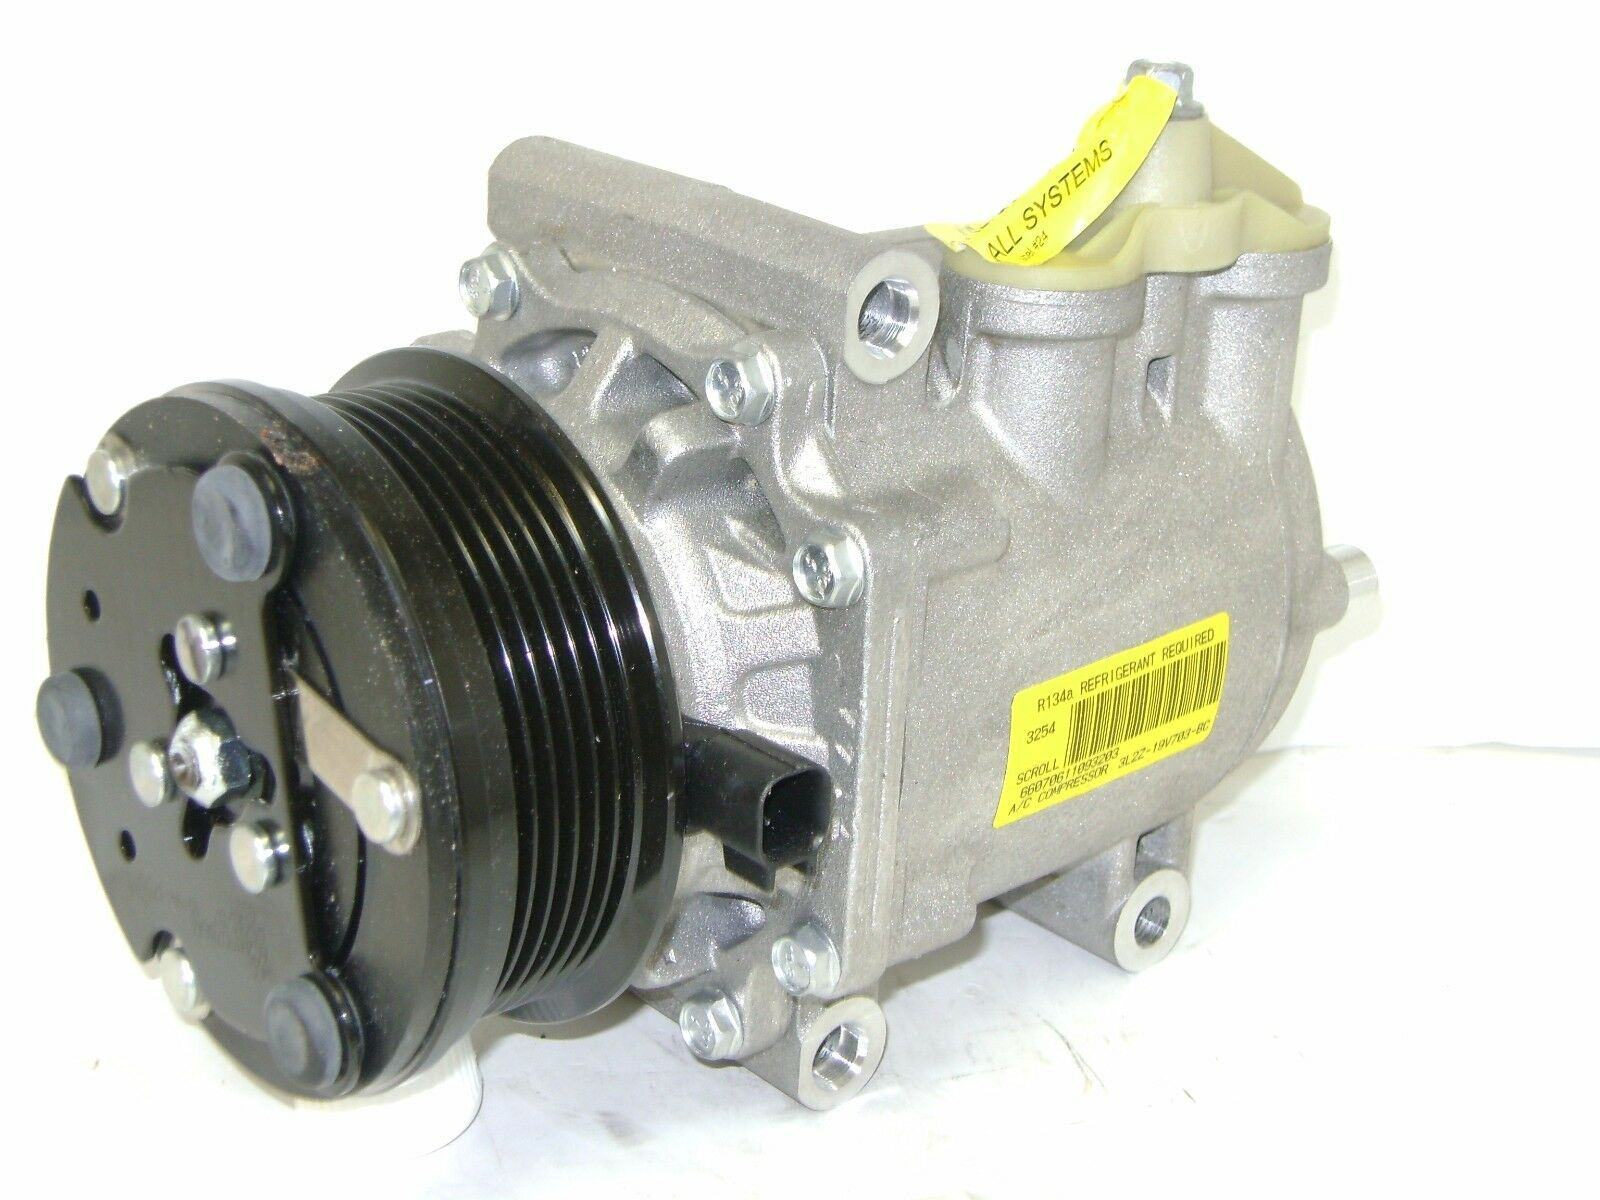 2002 2003 2004 2005 Ford Explorer V6 4.0L New AC Compressor with Clutch 1 Year Warranty